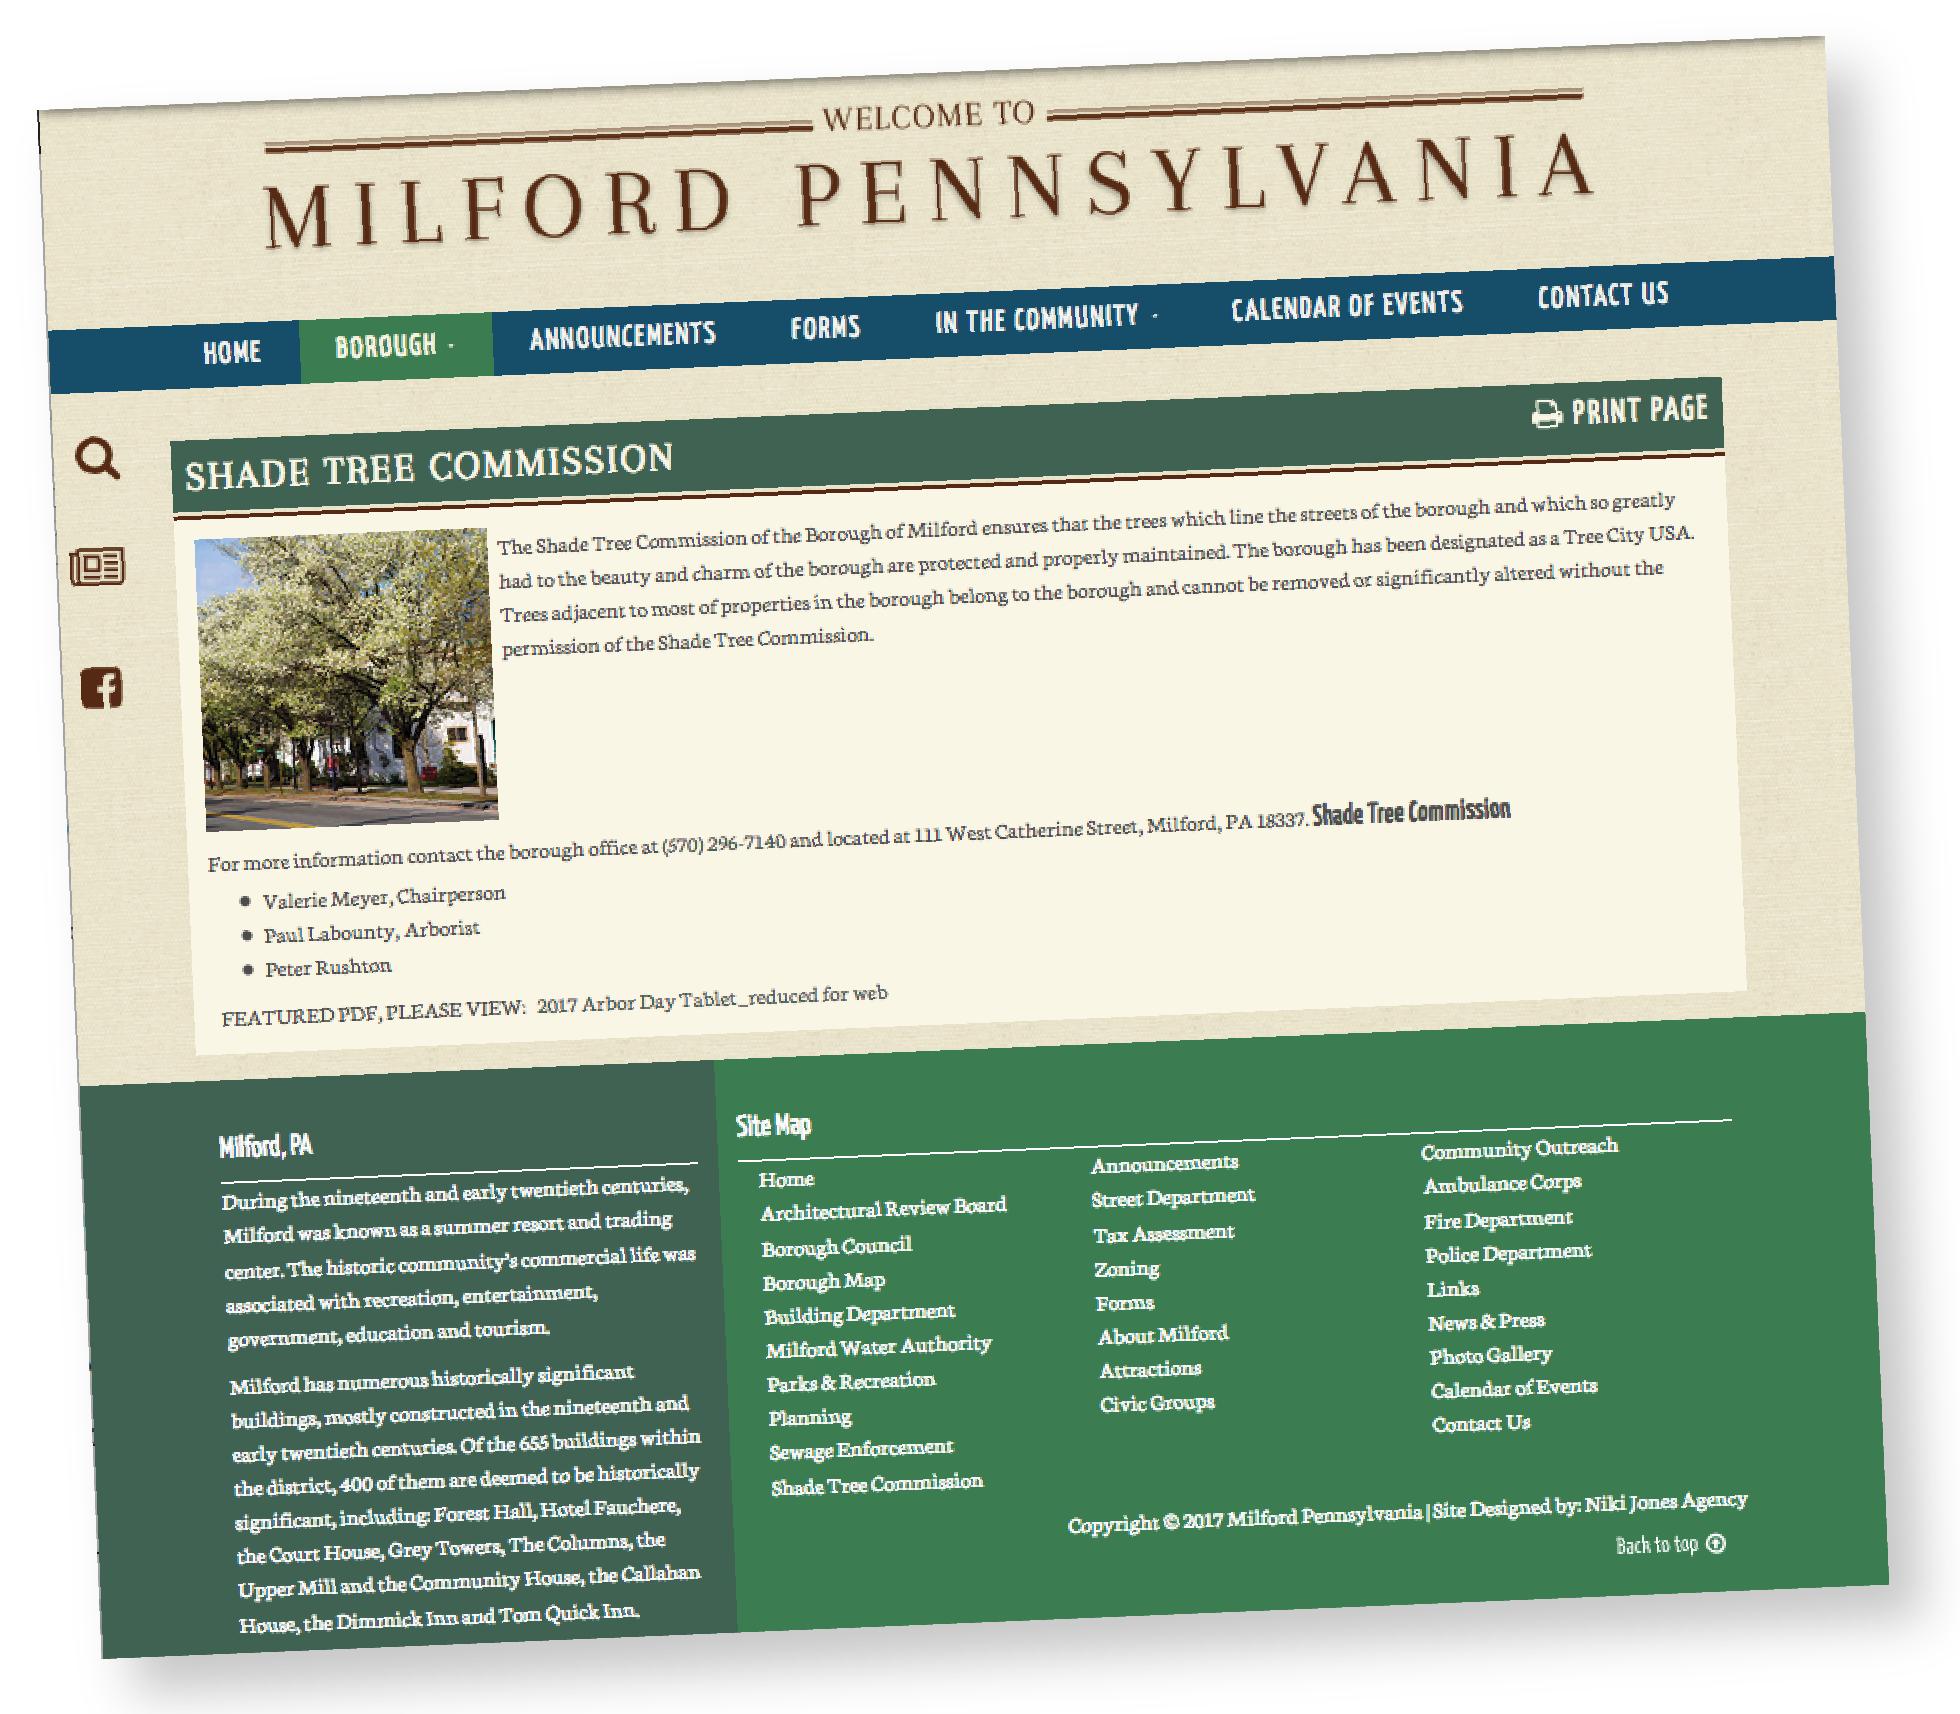 milford township web page